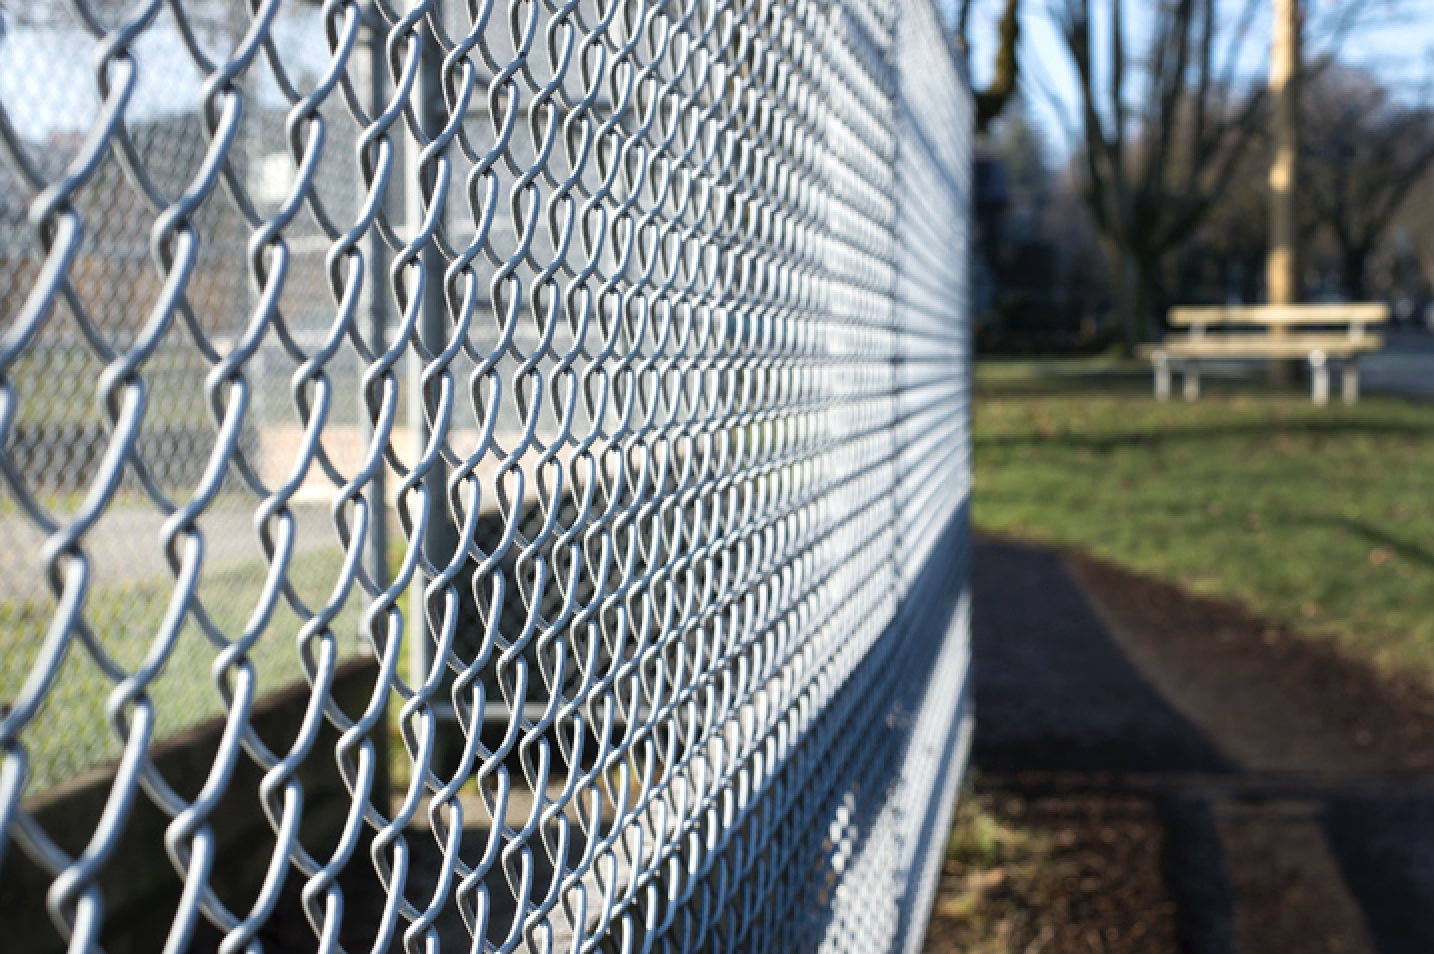 Chain link fence at a commercial property in Wilmette, Illinois